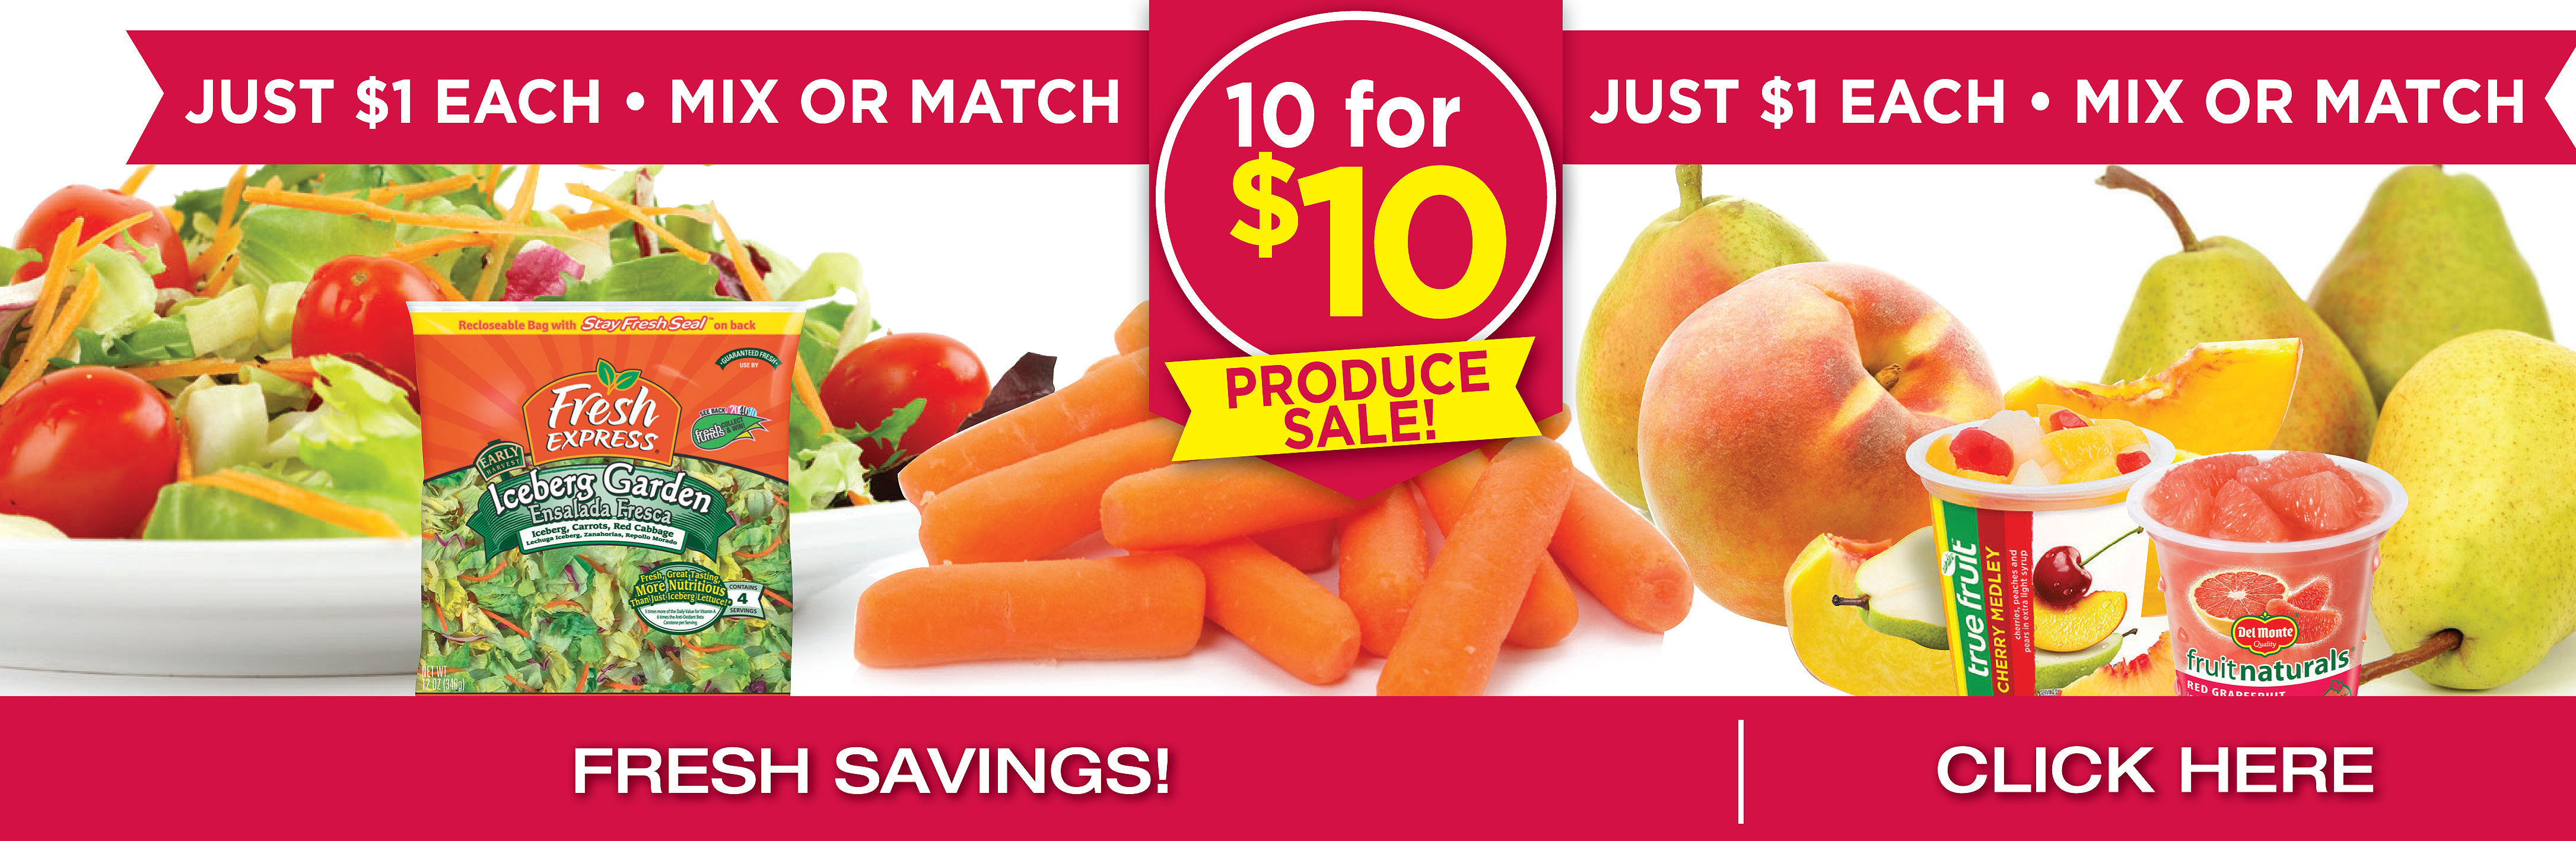 10 For $10 </br>Produce Items Mix or Match